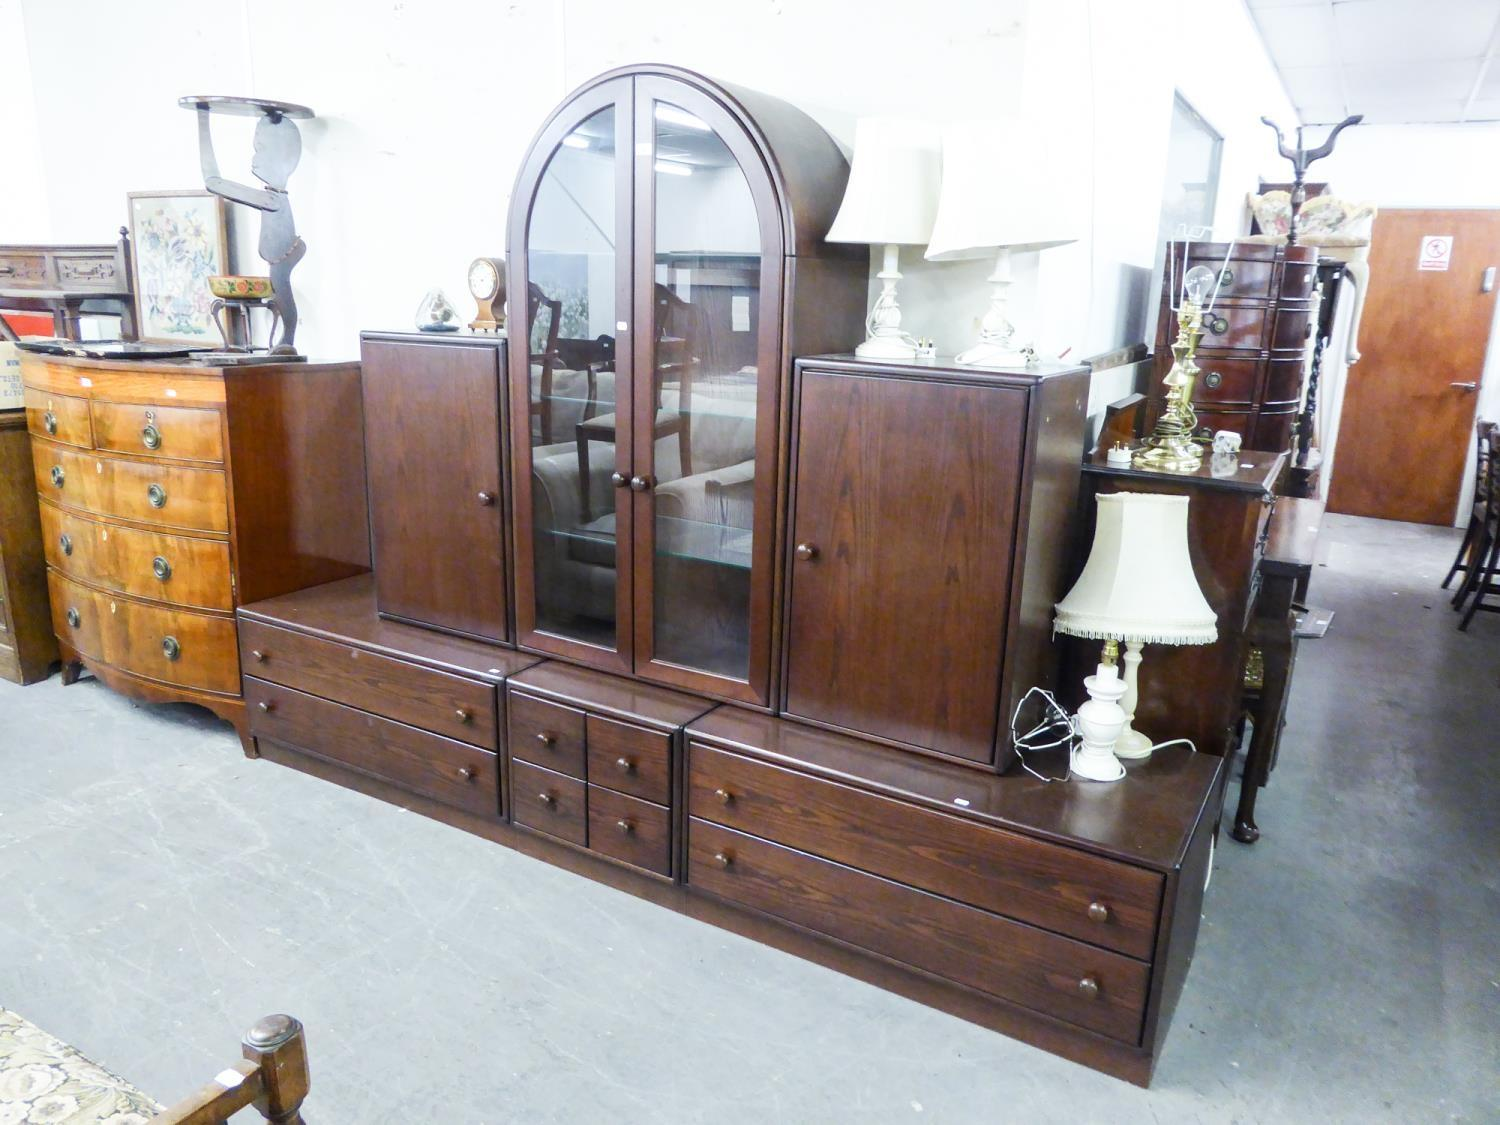 Lot 8 - A GOOD QUALITY 'HULSTA' DARK OAK LOUNGE UNIT, THE UPPER SECTION HAVING CENTRAL ARCH GLAZED DOORS,